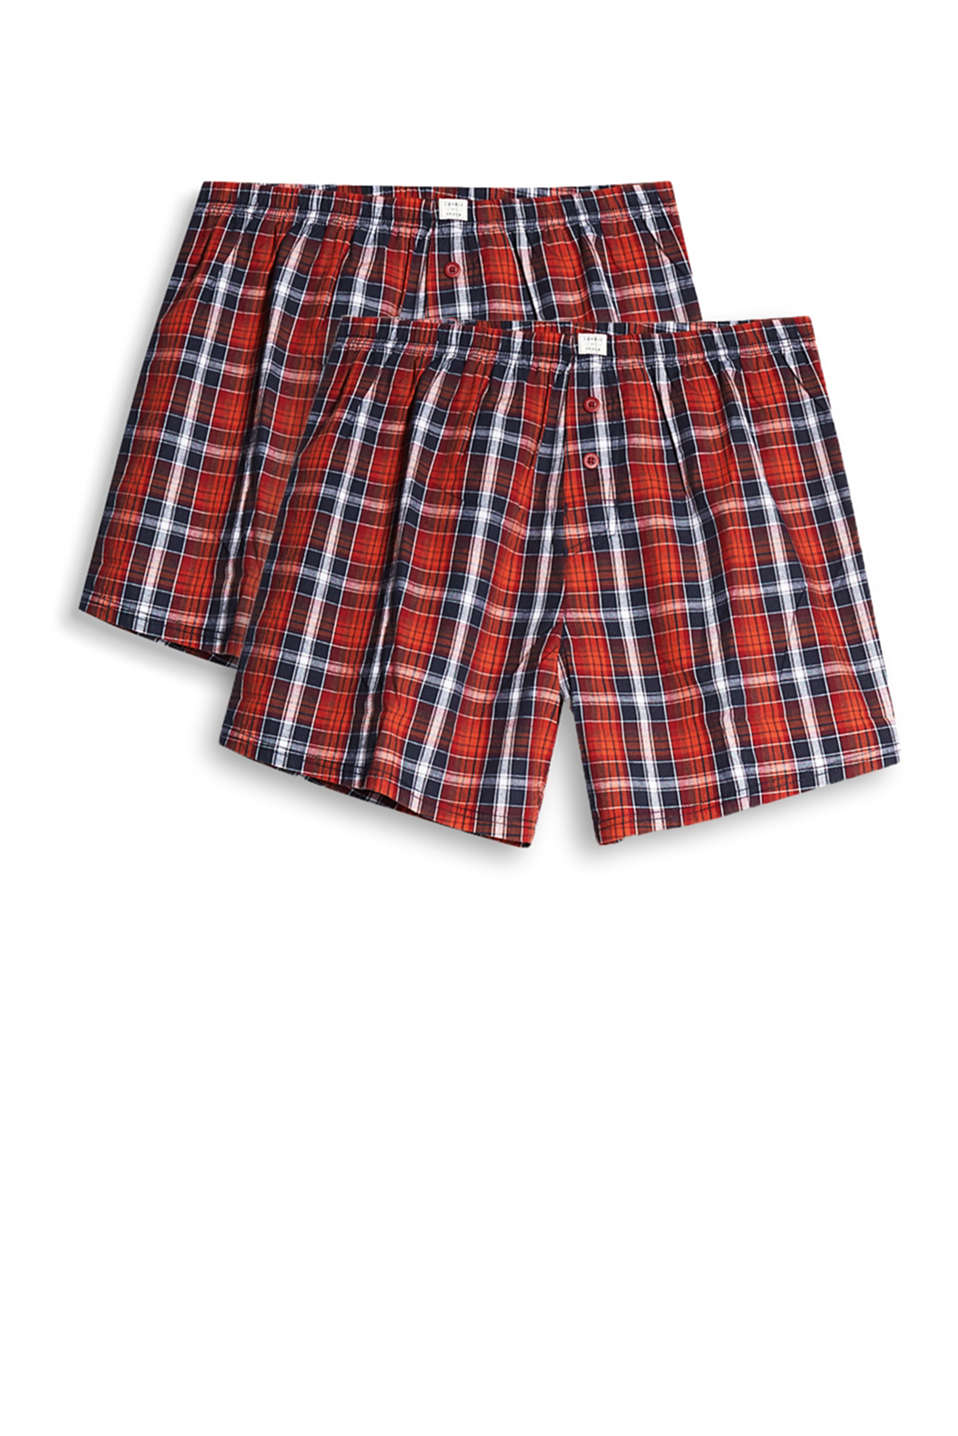 Boxer shorts and checks - a great mix! Available as a double pack in pure, smooth cotton!